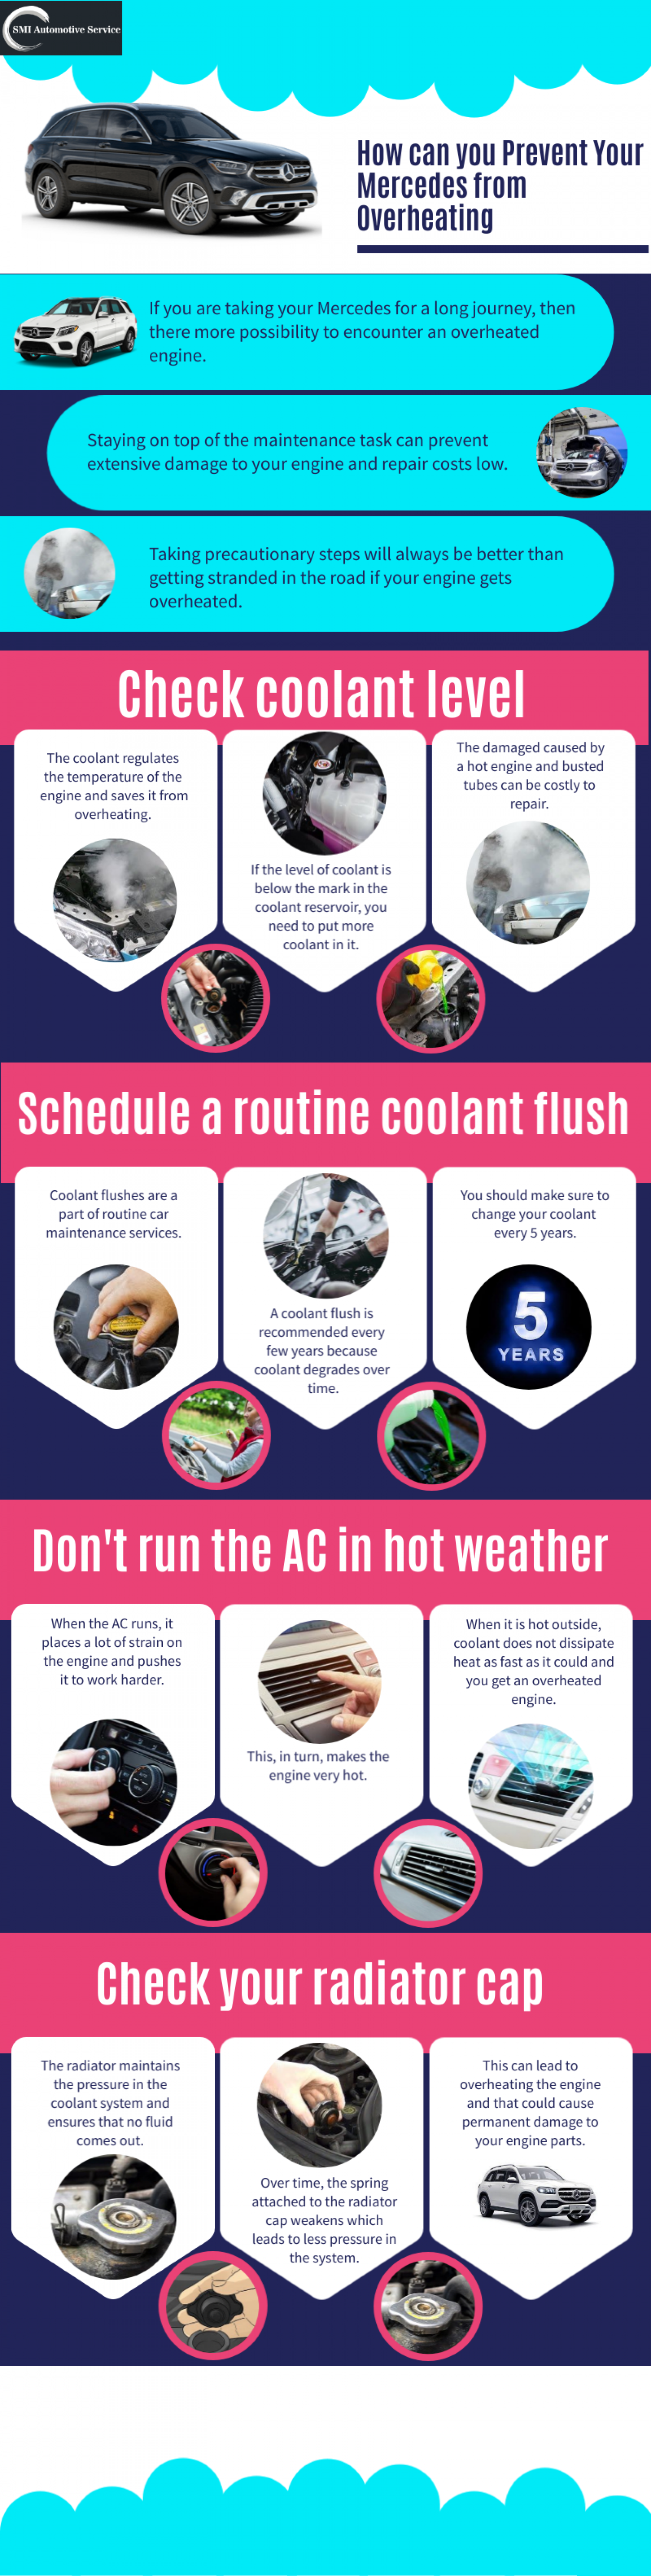 How can you Prevent Your Mercedes from Overheating? Infographic